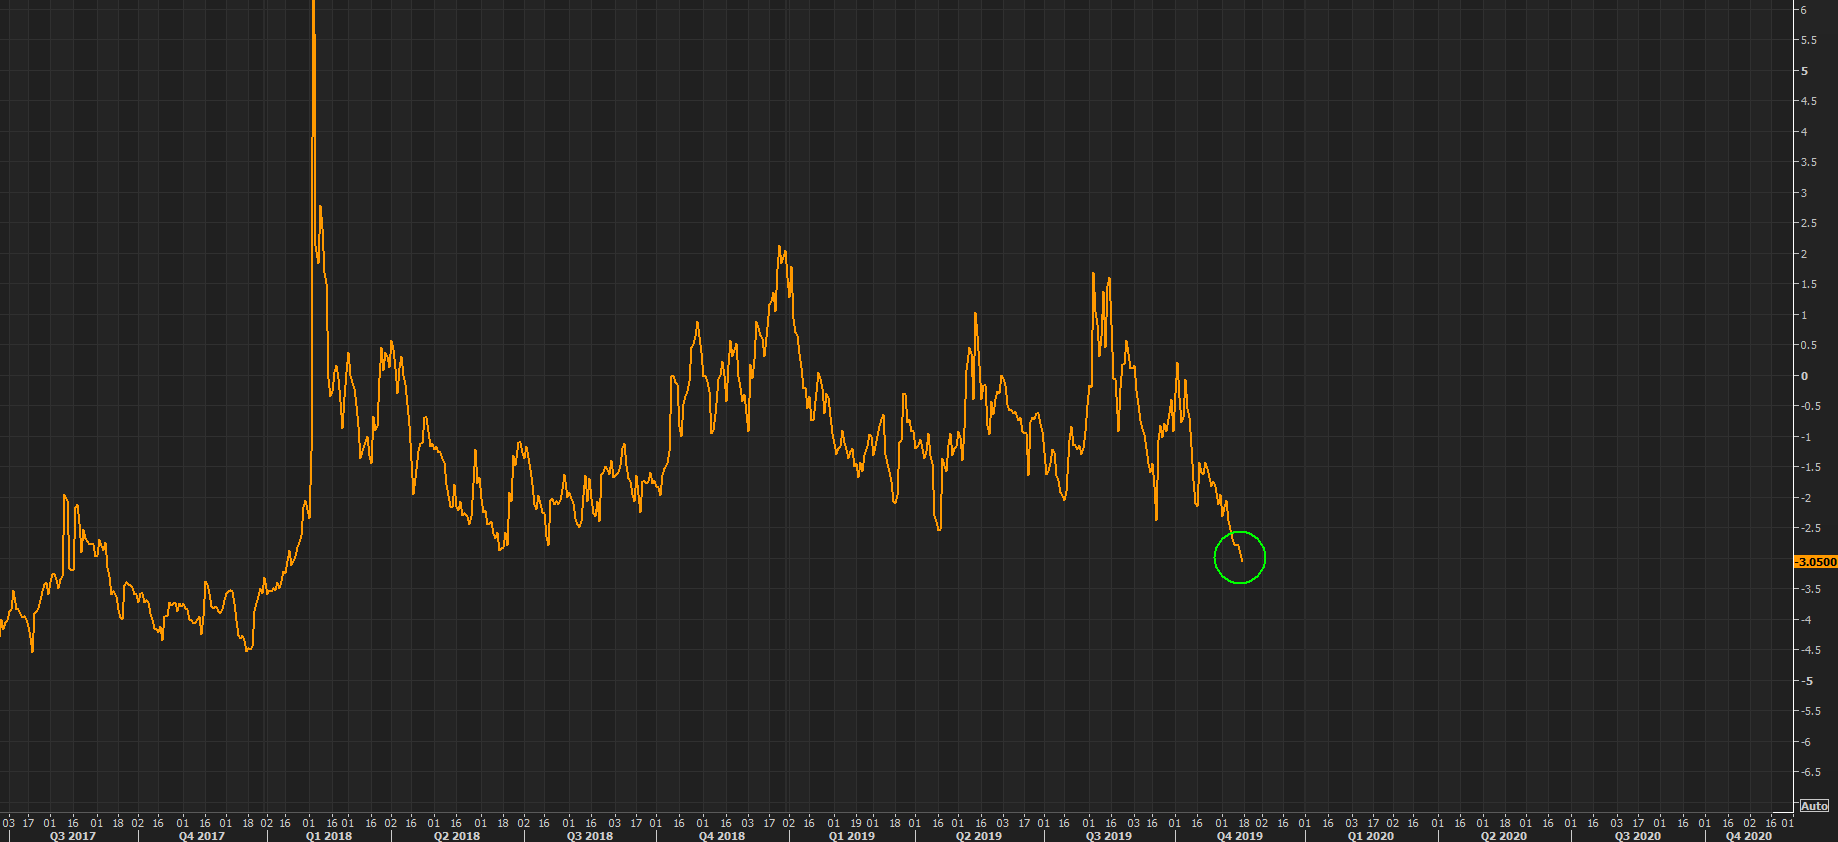 VIX futures spread collapsing further as demand for short term protection is out of fashion